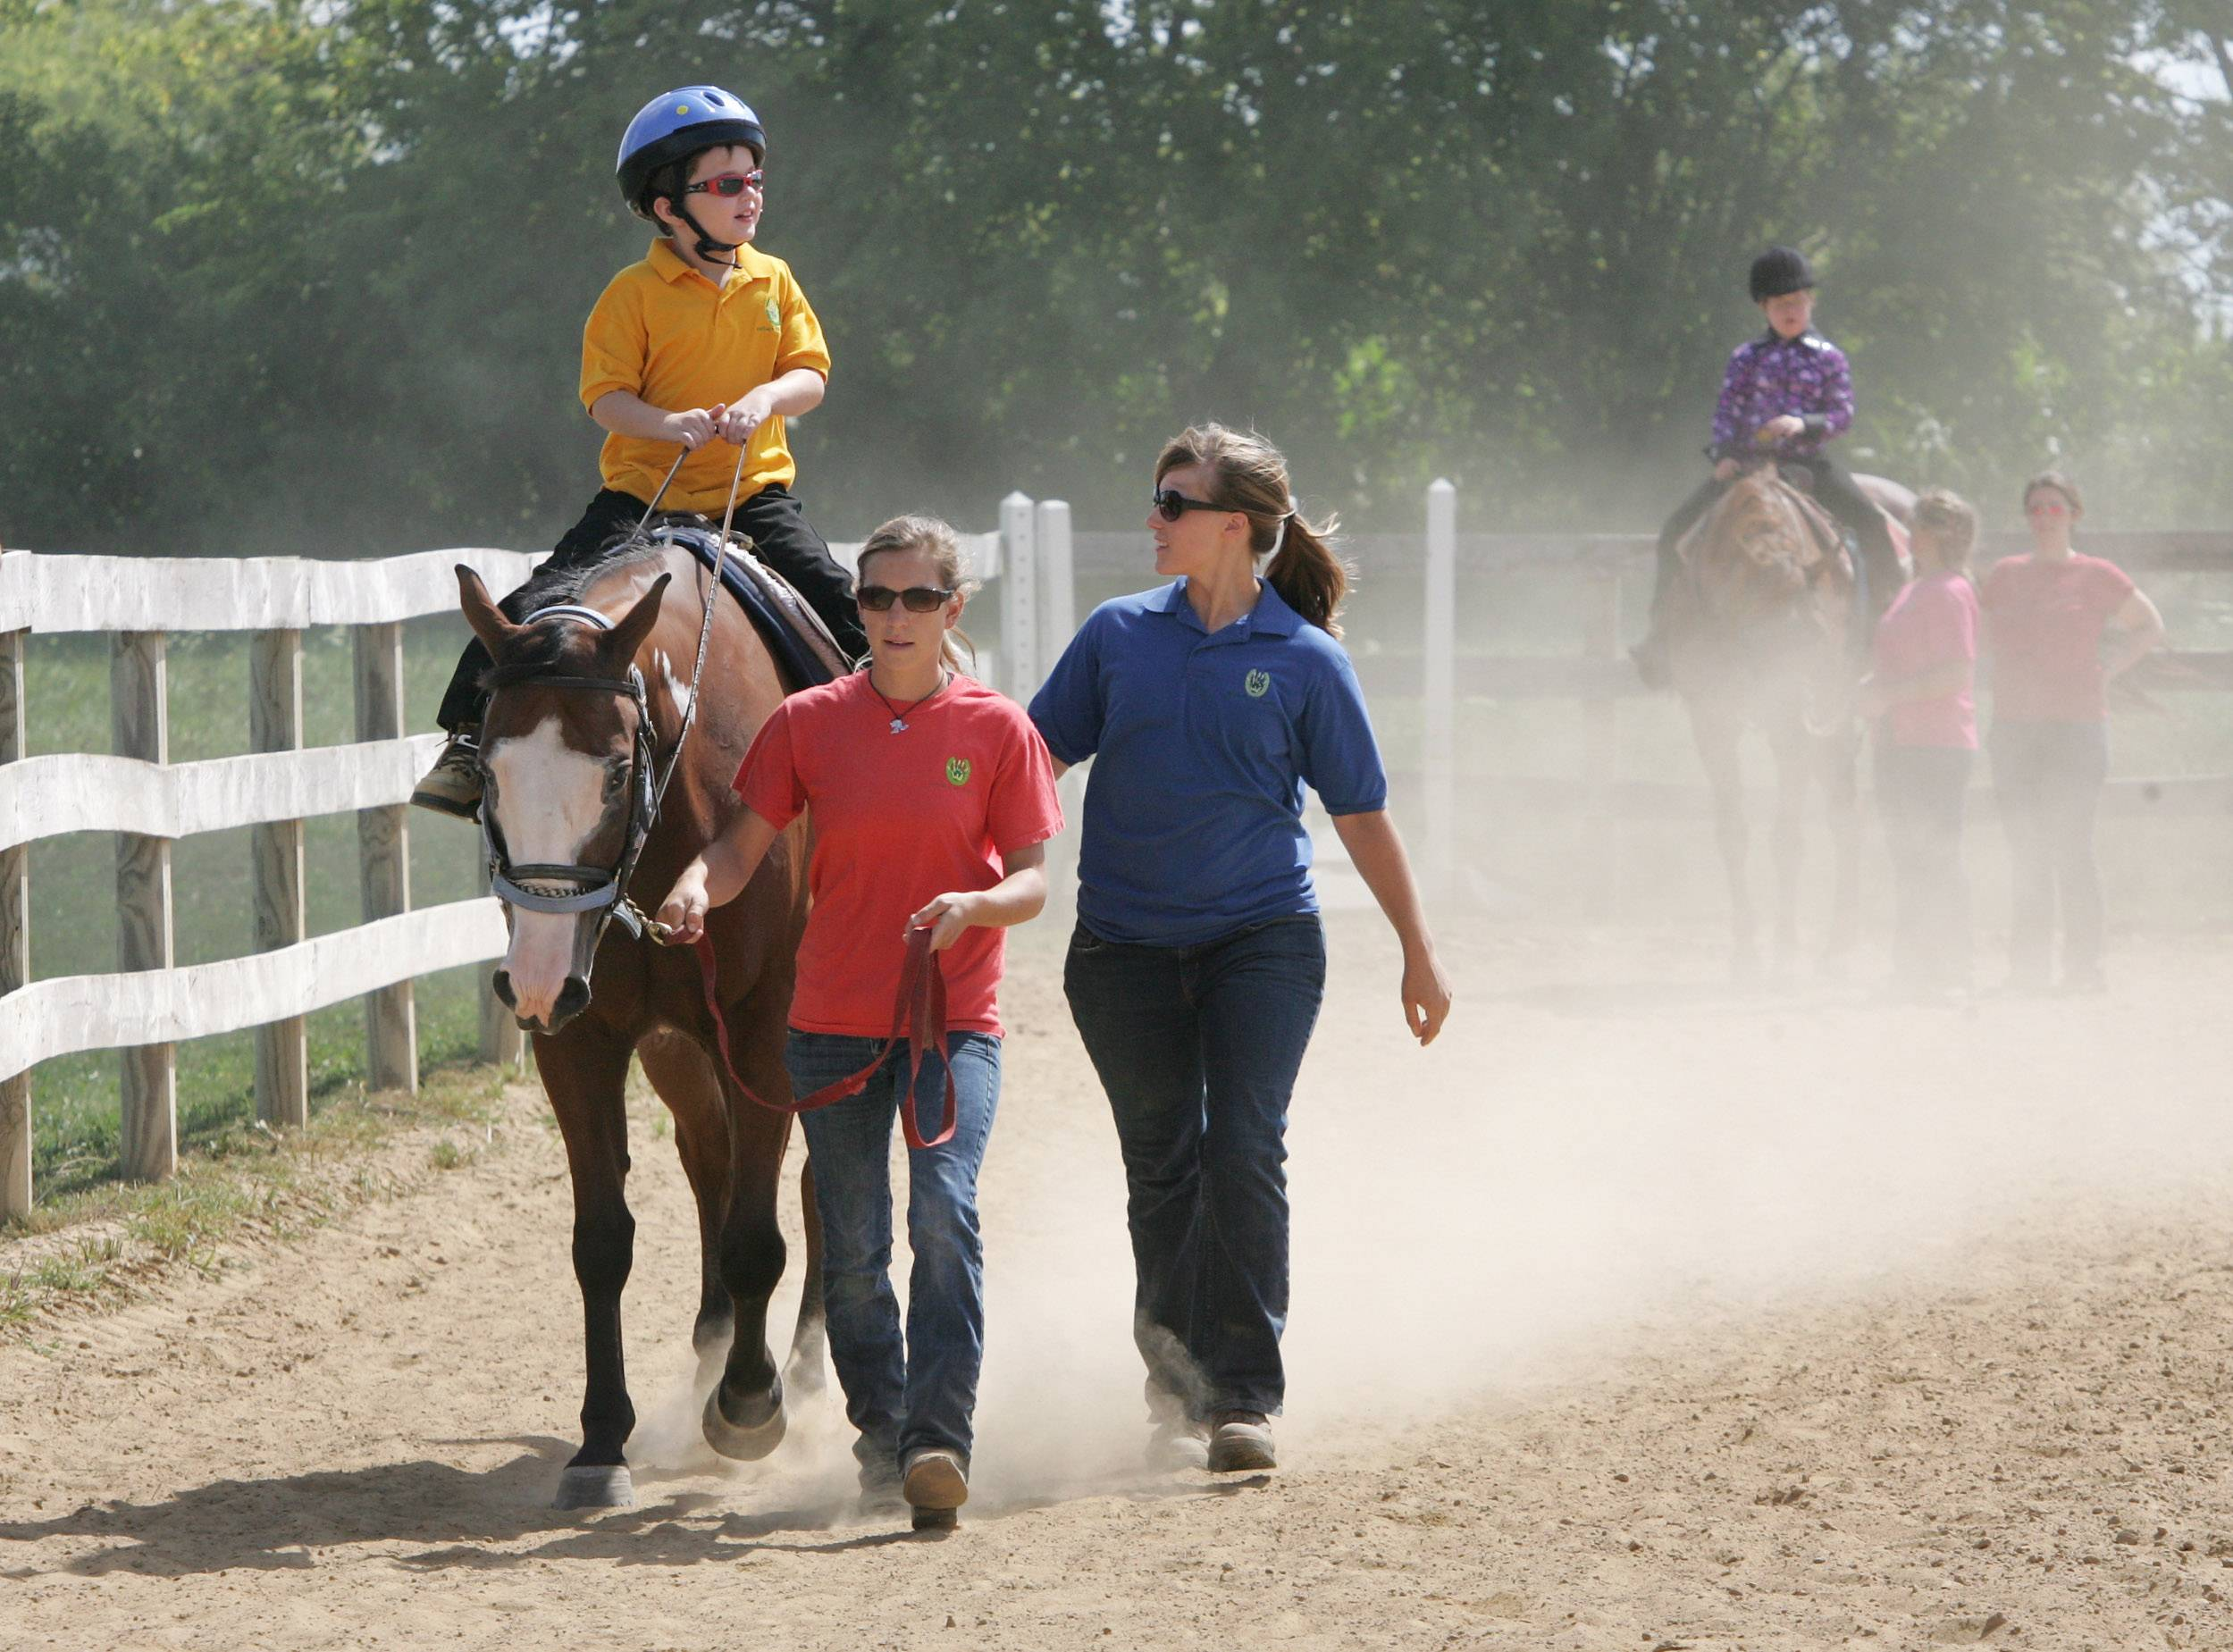 Nine-year-old Drew McCarthy of Antioch rides Party with help from instructors Lindsey Weick and Marle Novacnik during the annual Family Summerfest and Participant Horse Show Event hosted by Partners for Progress in Wauconda. The programs' riders with special needs showcased their riding skills for family and friends.